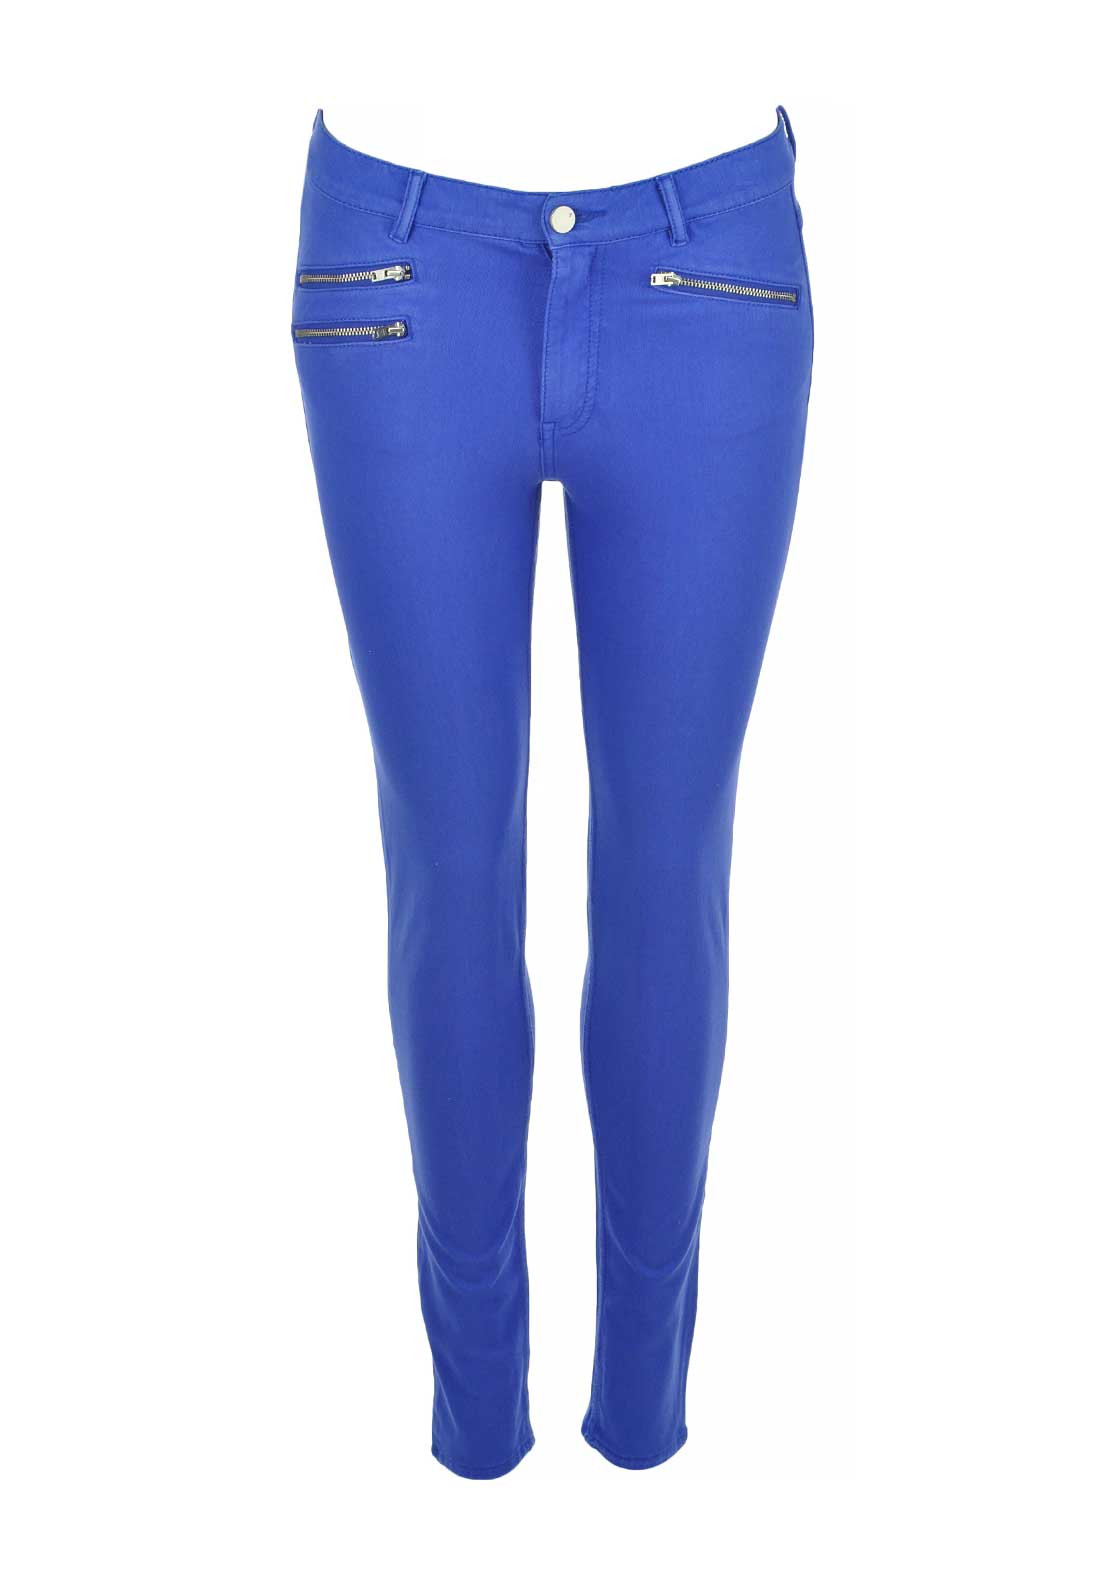 French Connection Super Skinny Jeans, Empire Blue